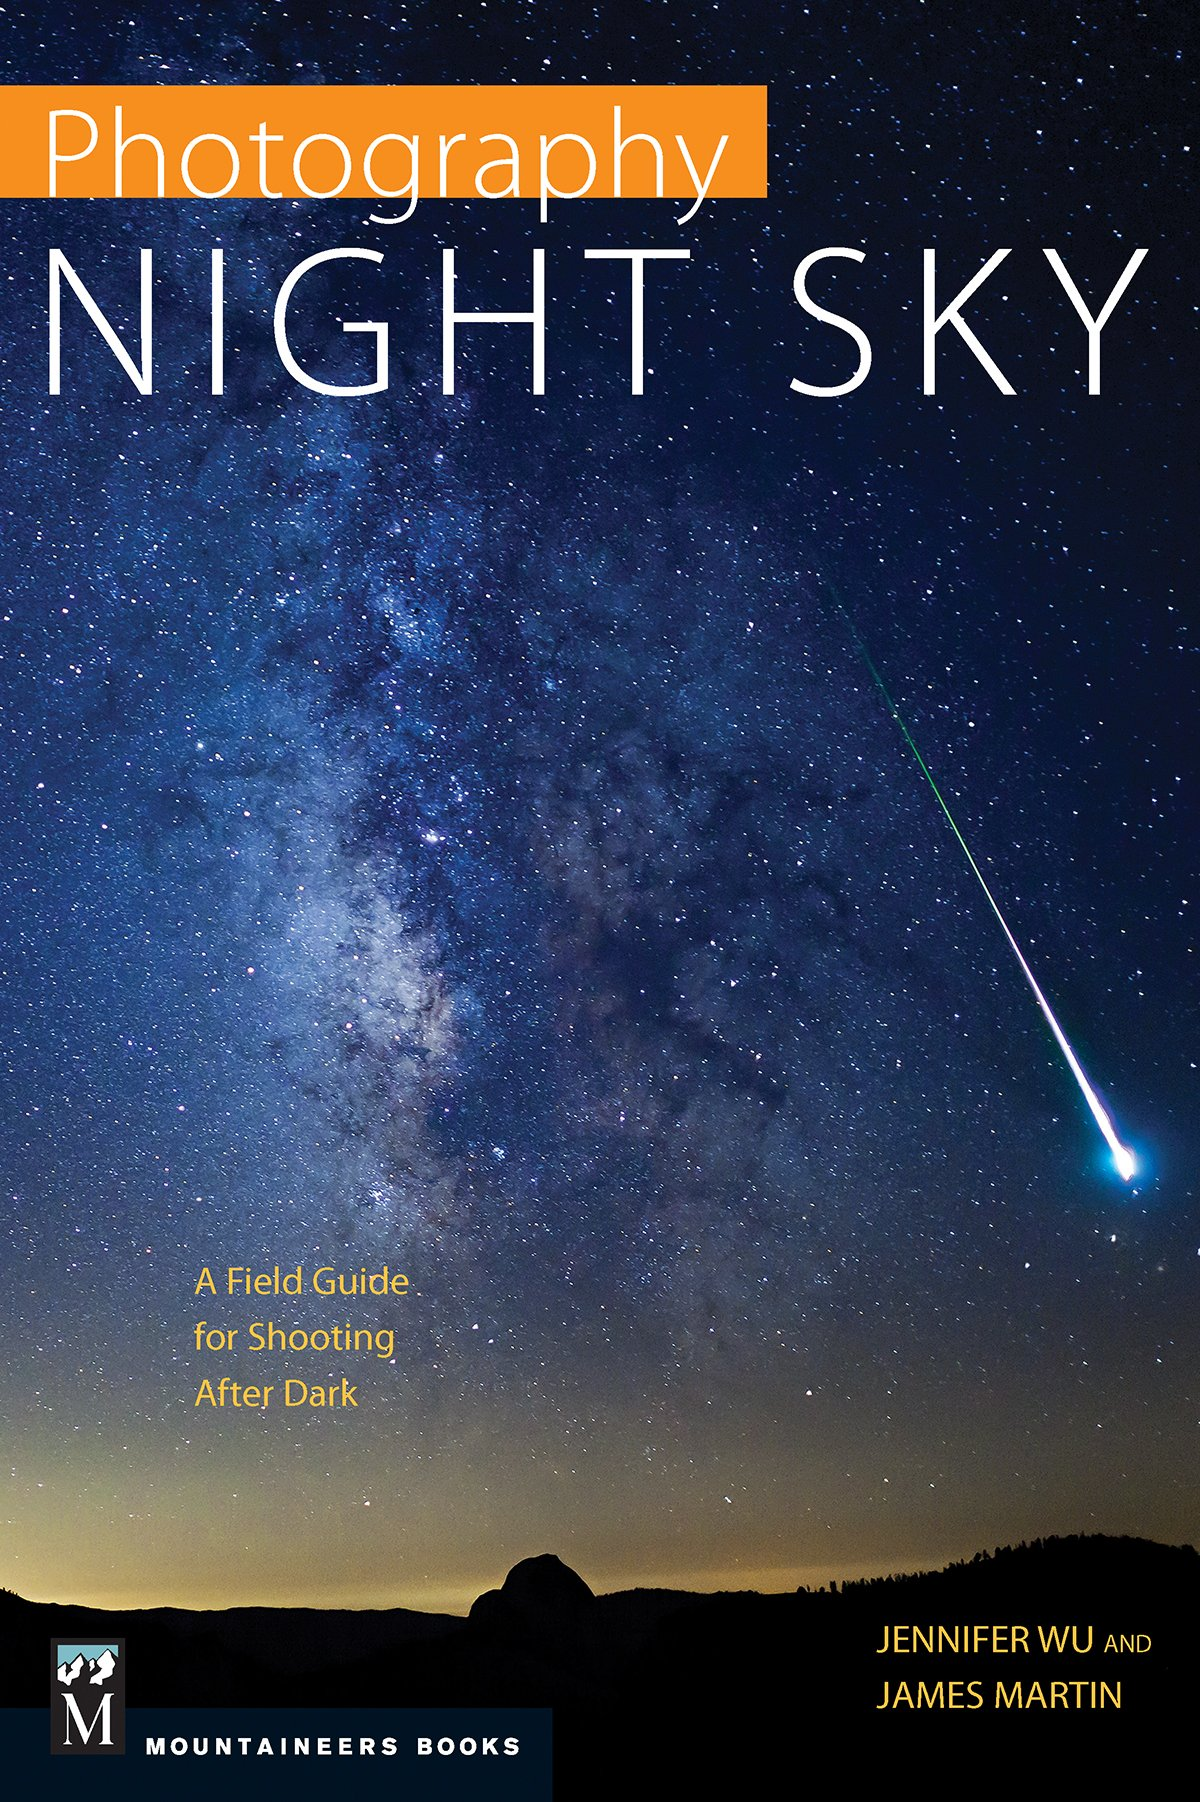 Amazon photography night sky a field guide for shooting after amazon photography night sky a field guide for shooting after dark 8601405172785 jennifer wu james martin books thecheapjerseys Image collections